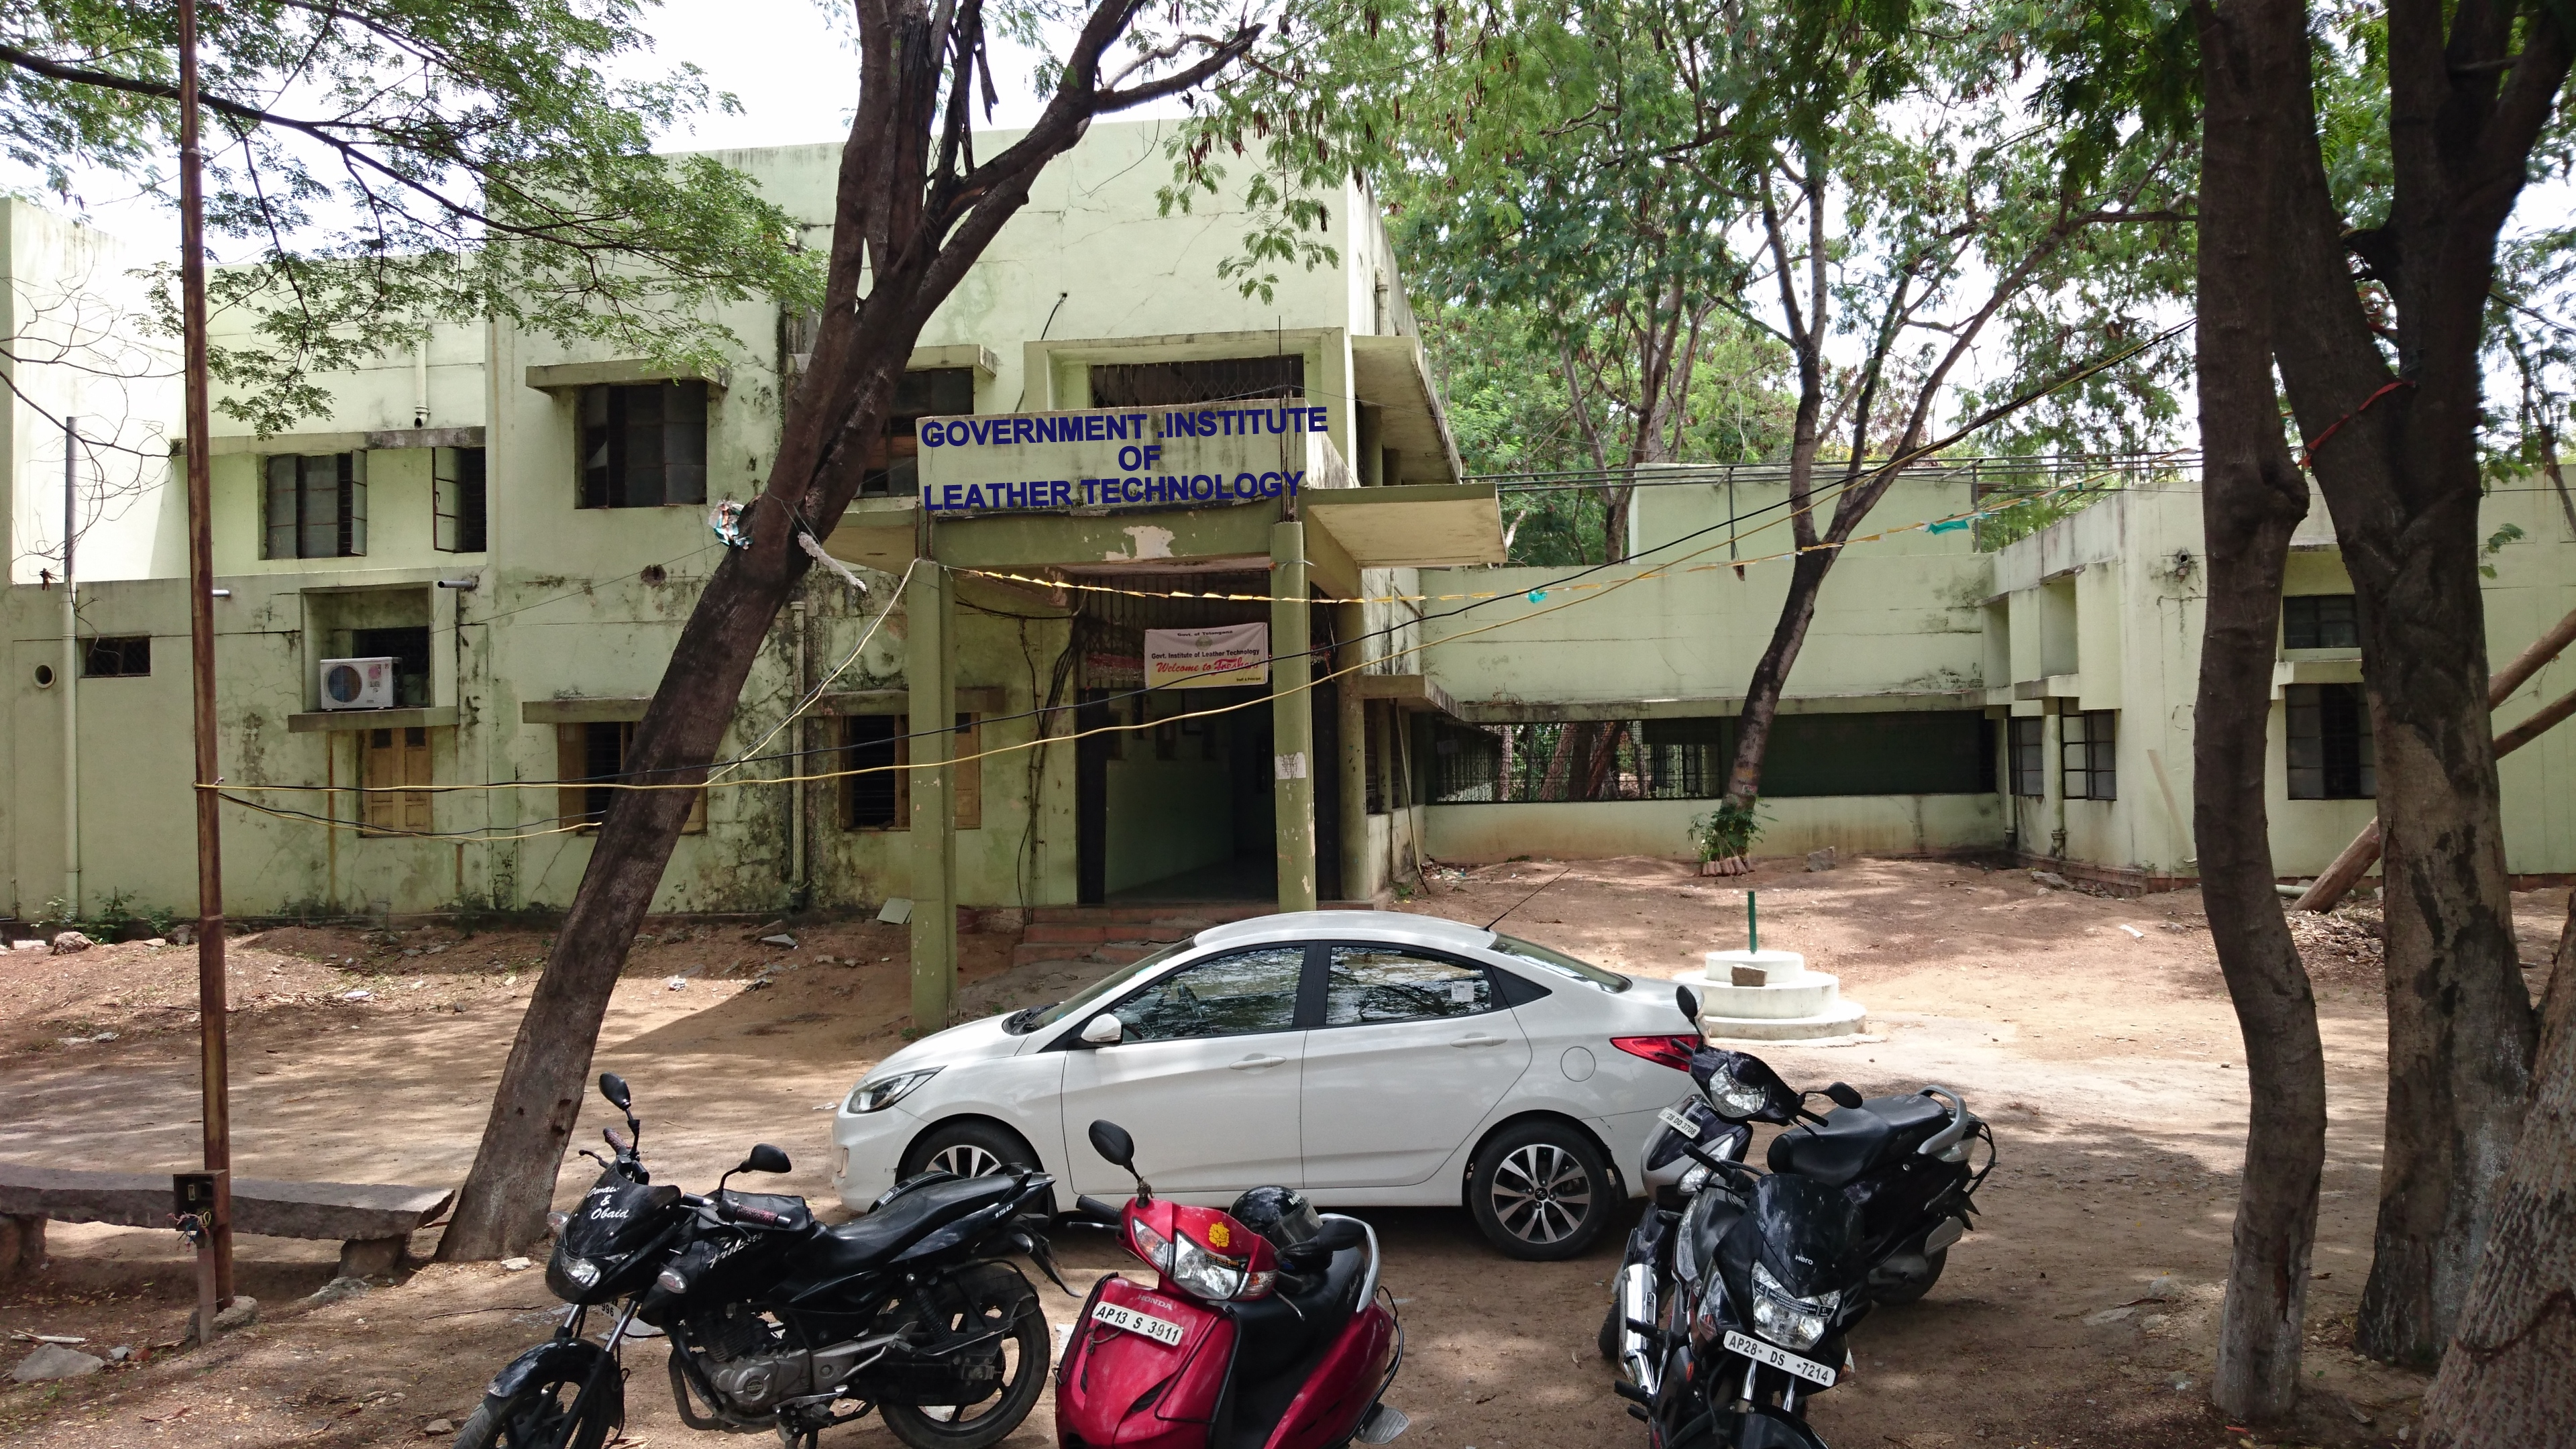 GOVERNMENT INSTITUTE OF LEATHER TECHNOLOGY